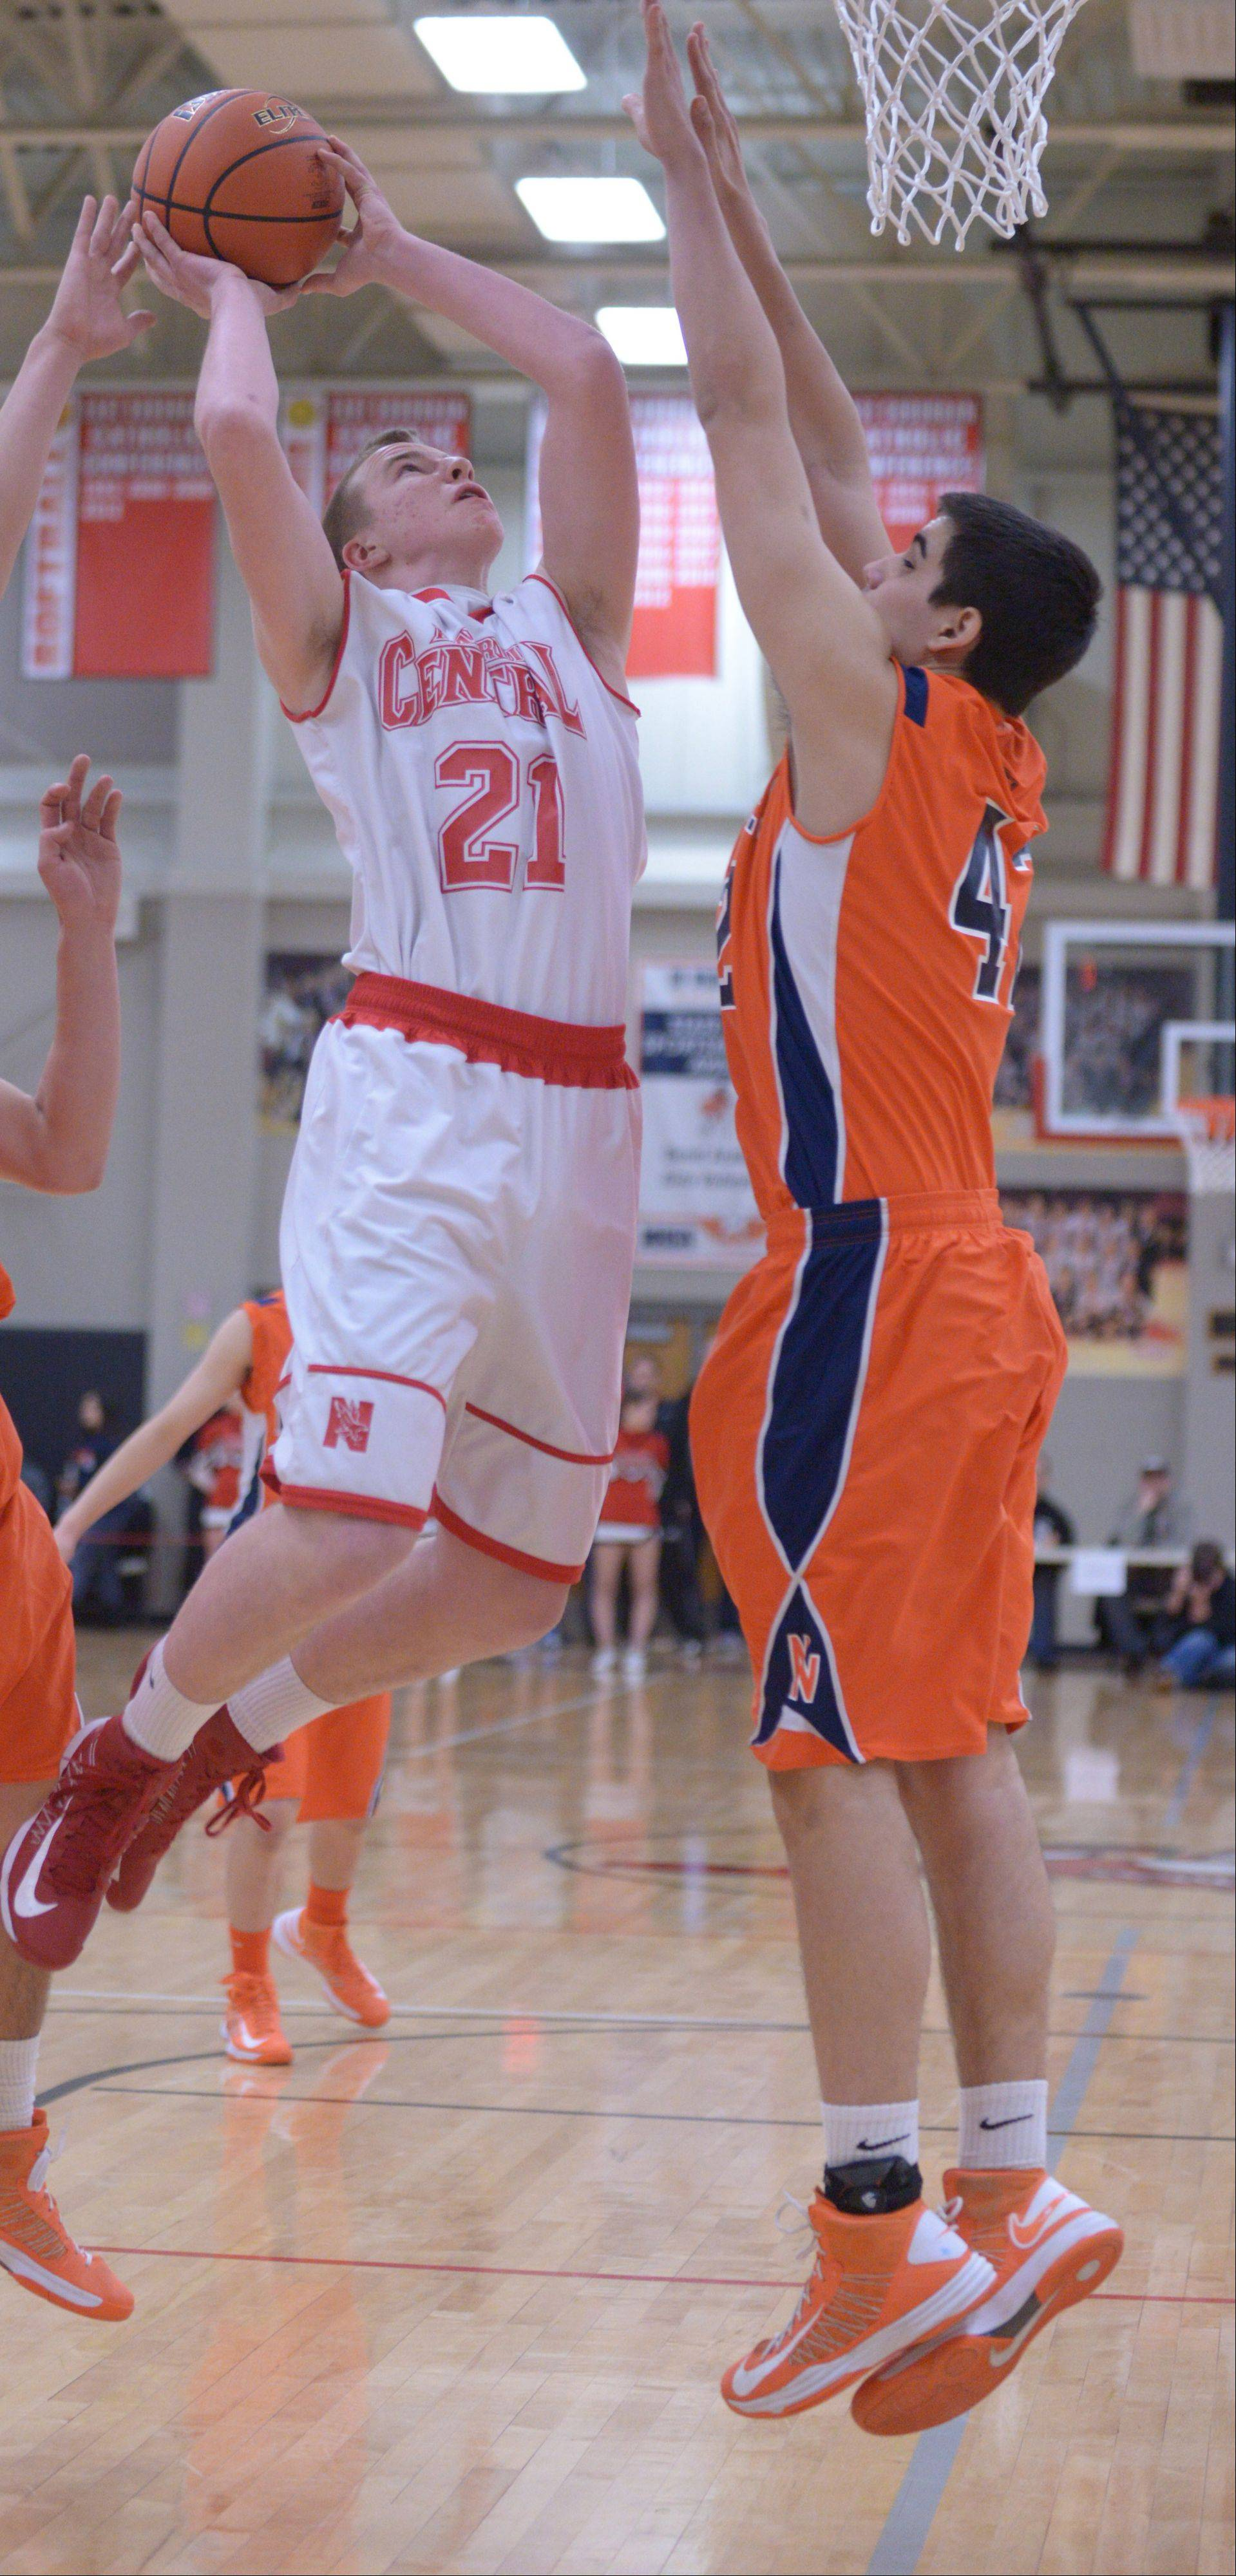 Mike Blaszczyk of Naperville Central puts up a shot while Rafee Mahmud of Naperville North blocks.